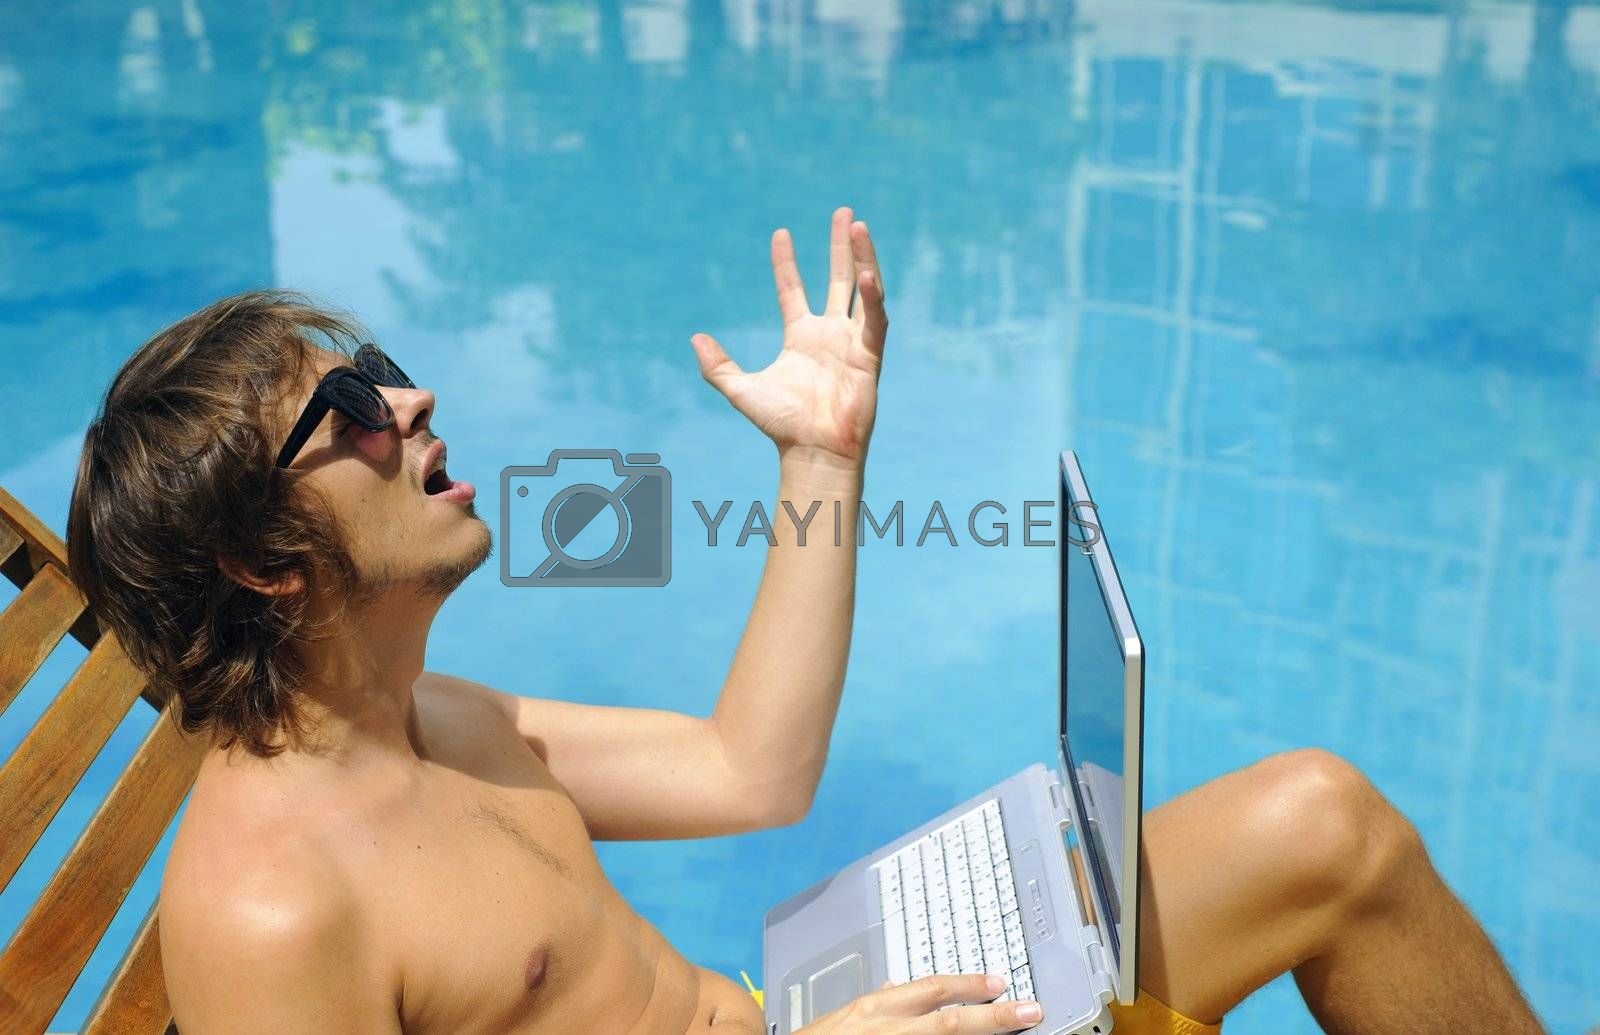 Man takes his laptop to the pool with him